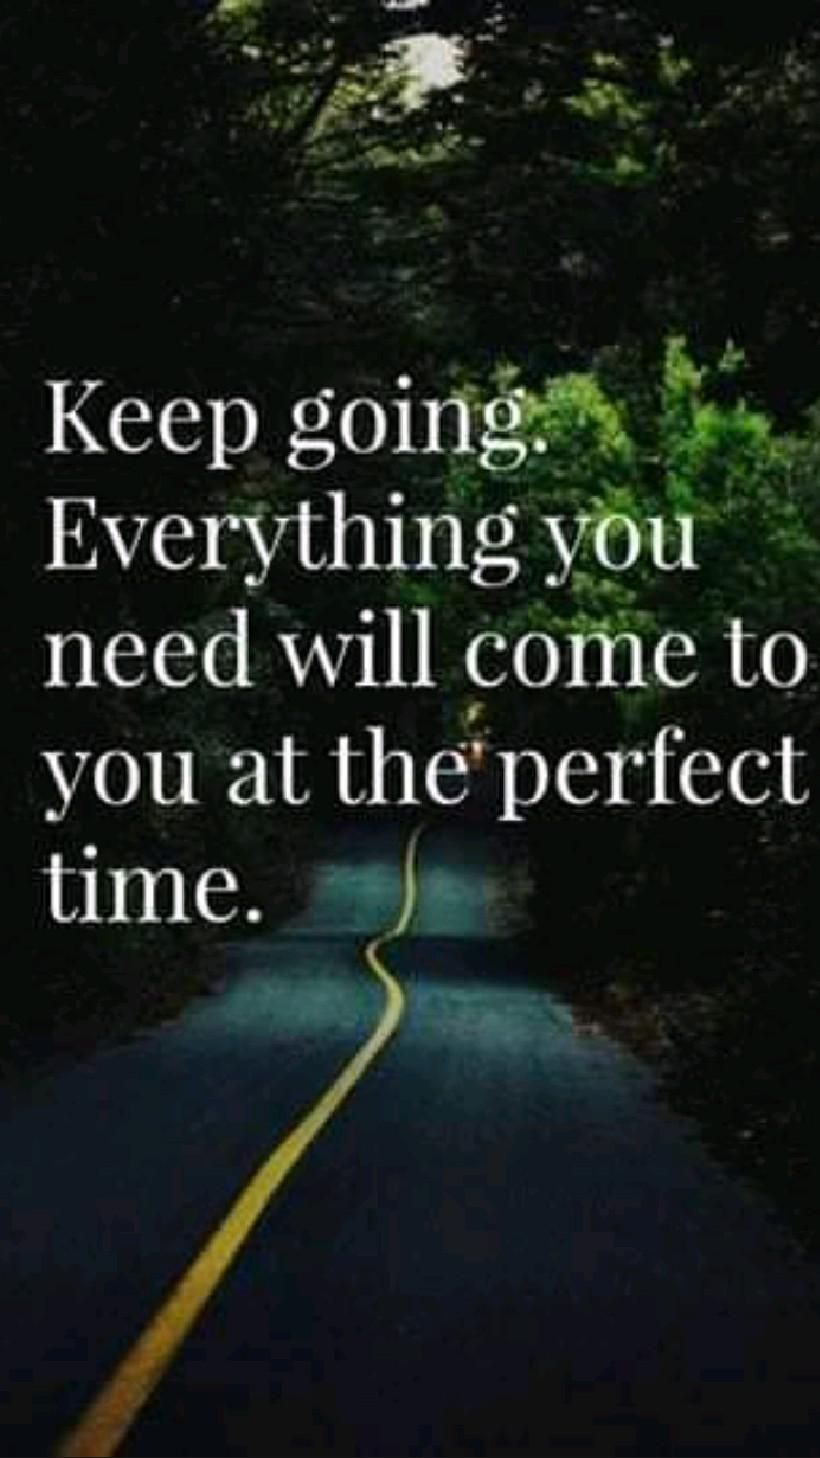 Keep going everything you need will come to you..